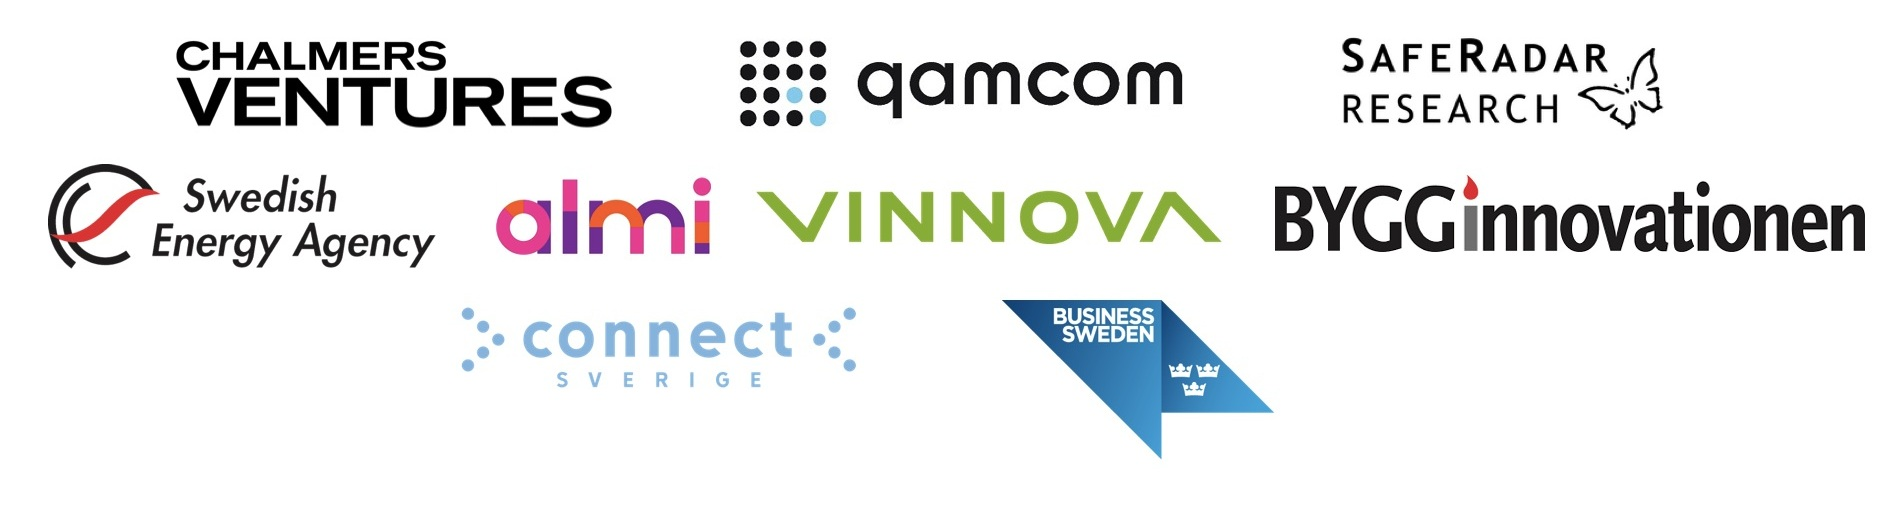 Vi är partners och stöds av:  Chalmers Ventures ,  Qamcom Ventures ,  Safe Radar Research ,  Swedish Energy Agency ,  Almi ,  Vinnova ,  Bygg Innovationen ,  ConnectSverige ,  Business Sweden